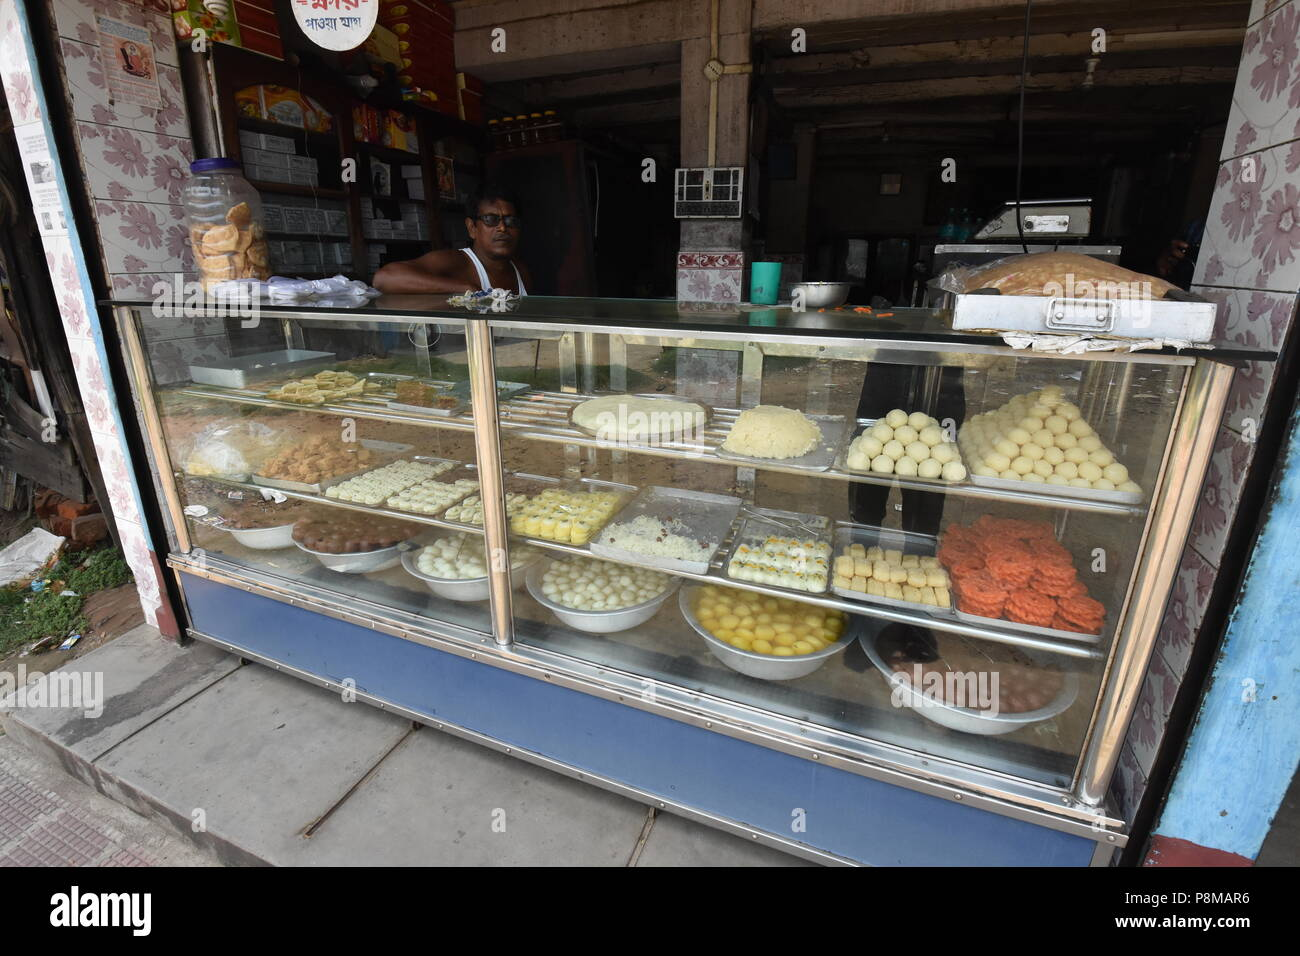 Shitala Mistanna Bhandar (A Bengali sweet house), Batai zero-point, Amta, Howrah, West Bengal, India - Stock Image